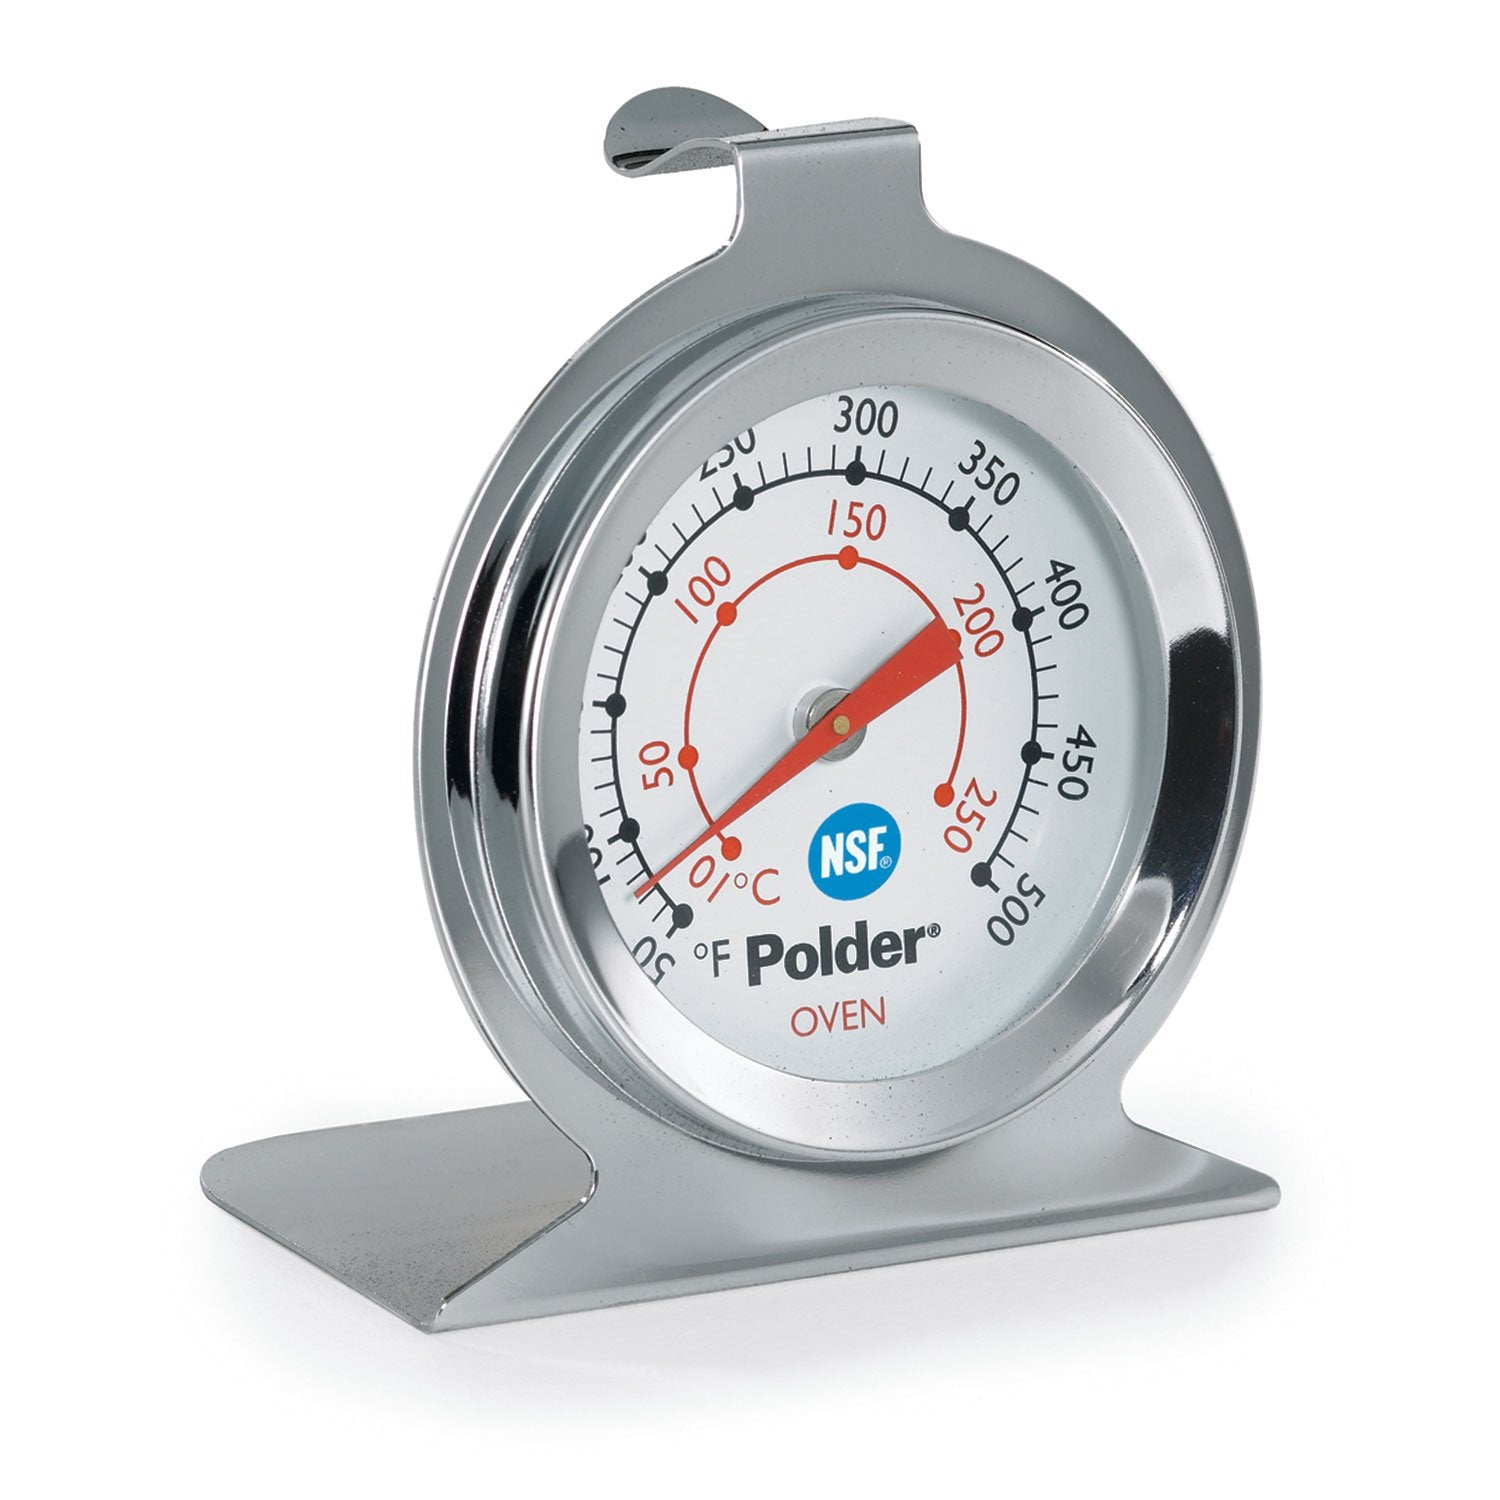 NSF Oven Thermometer